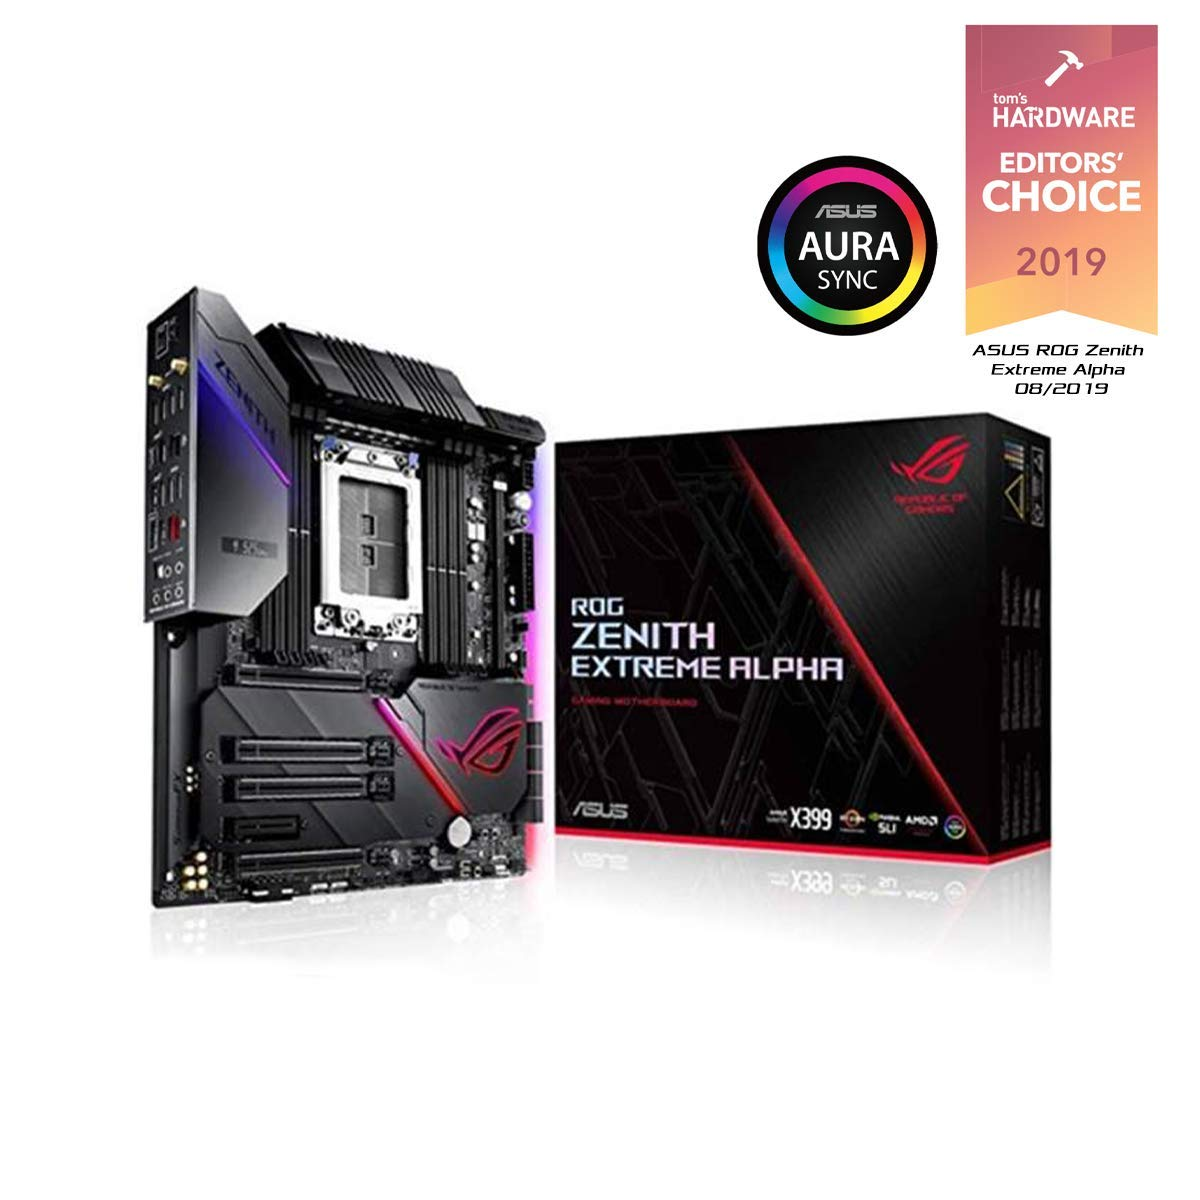 Asus ROG Zenith Extreme Alpha X399 HEDT Gaming Motherboard AMD Threadripper 2 (TR4) EATX DDR4 M.2 10G LAN USB 3.1 Gen2